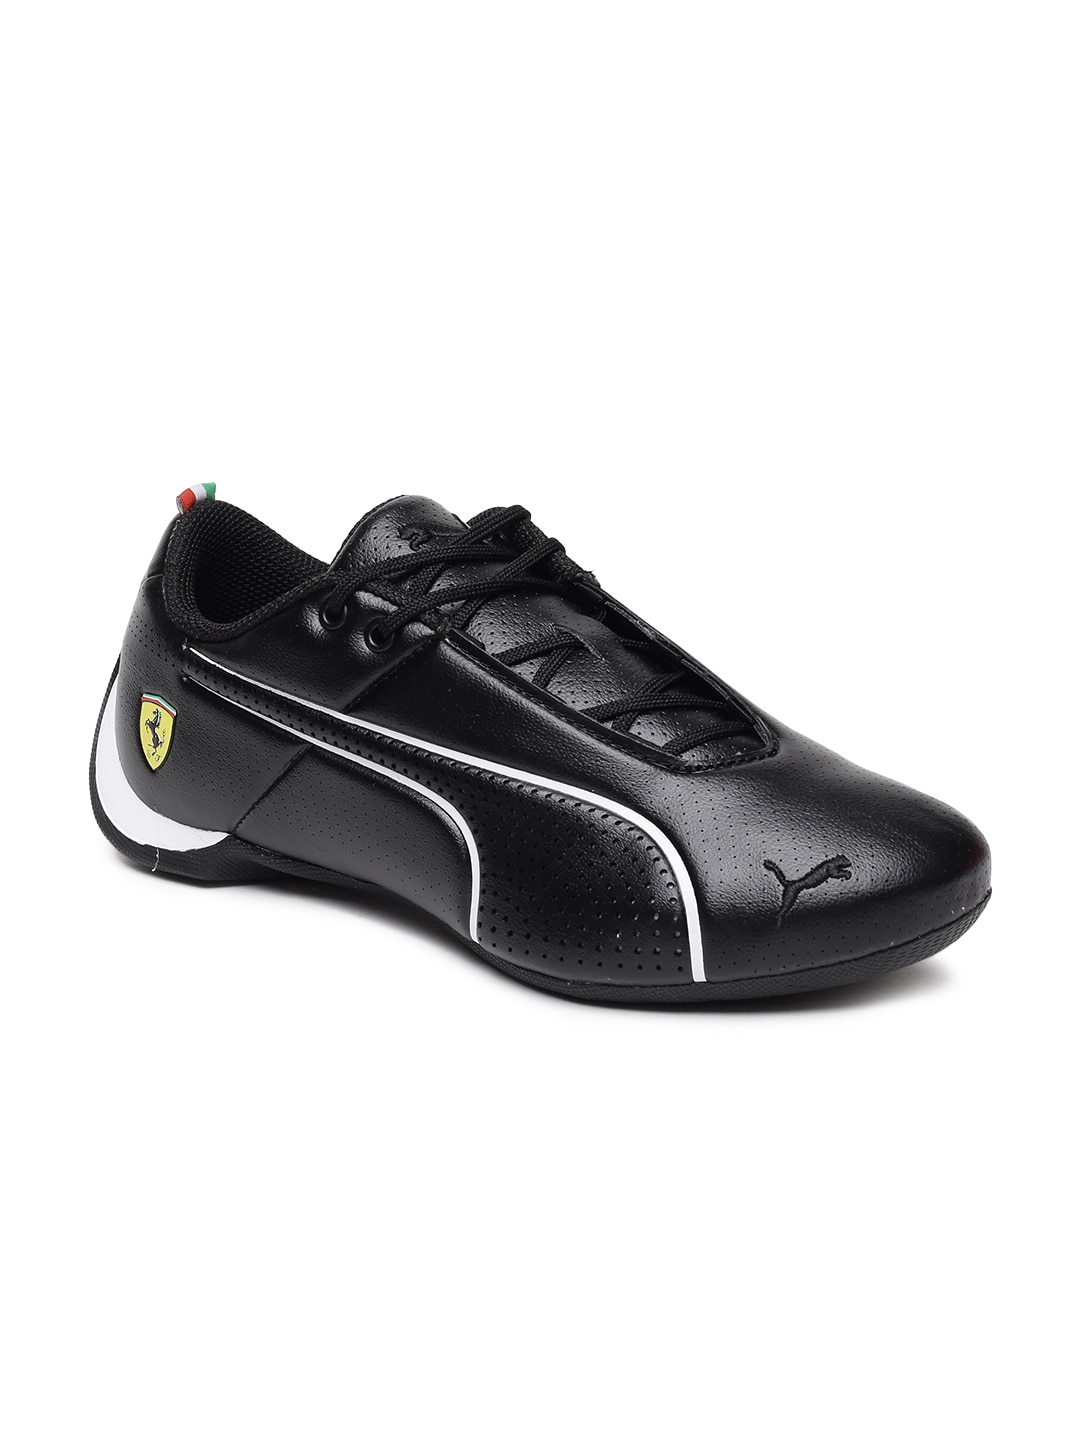 c75c7893649903 Puma Ferrari Black Shoes Casual - Buy Puma Ferrari Black Shoes Casual online  in India